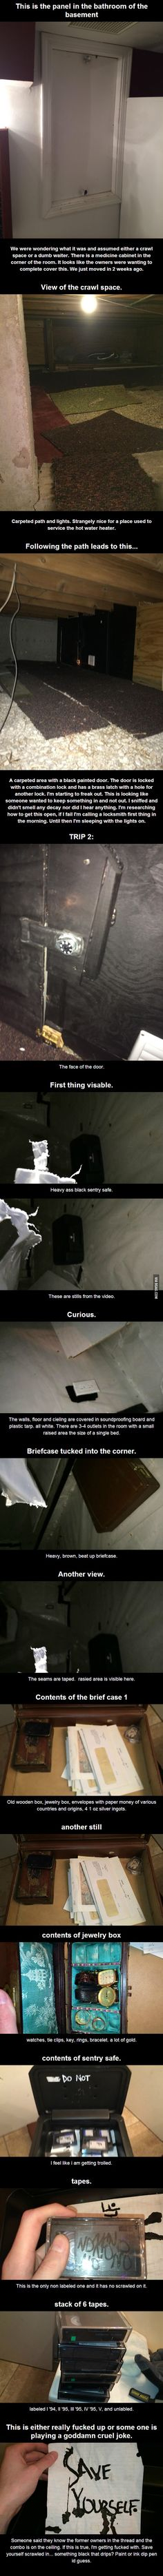 Guy found a creepy room in a hidden crawl space in his new home. a couple creepypastas come to mind when thinking of this Creepy Stories, Horror Stories, Paranormal, Lol, Urban Legends, Haunted Places, Creepypasta, Totally Me, Just In Case